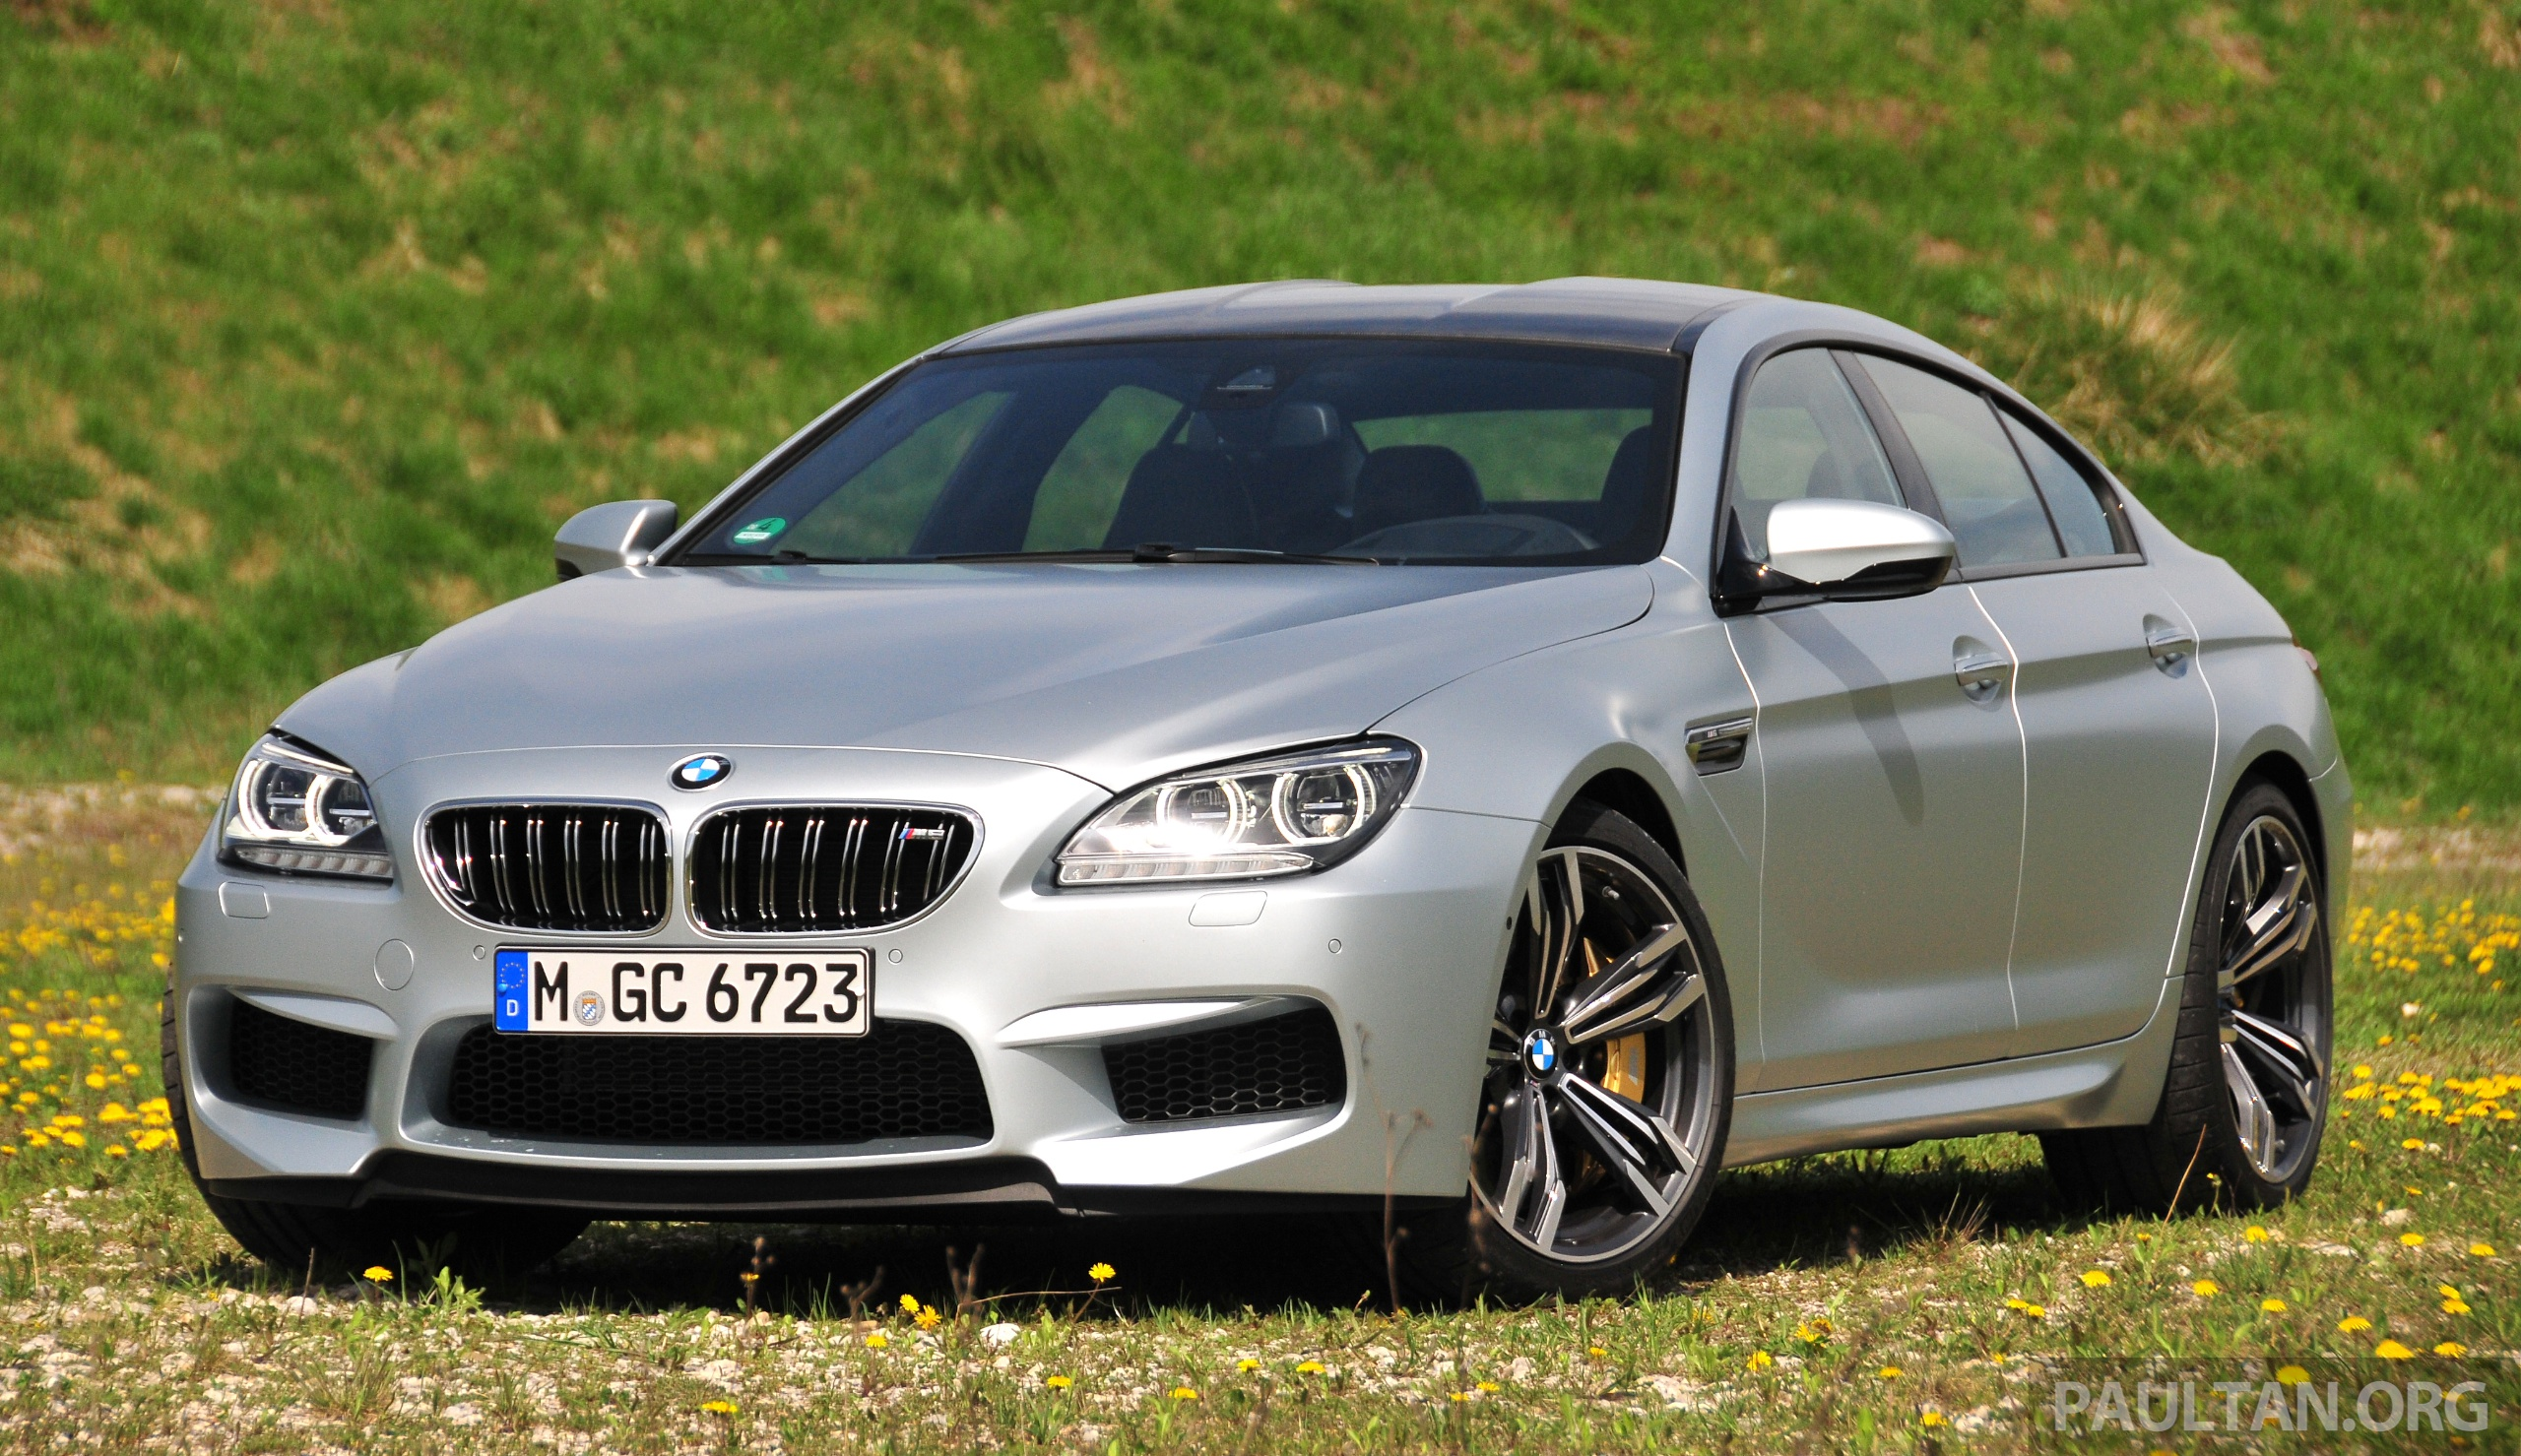 Gst Updated Bmw Prices Decrease Of Up To Rm19k